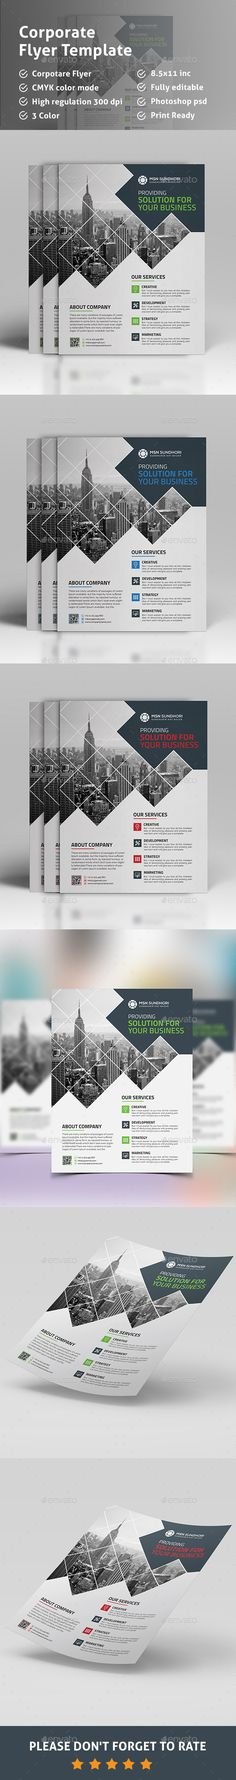 Corporate Flyer Template PSD. Download here: http://graphicriver.net/item/flyer-/15625950?ref=ksioks